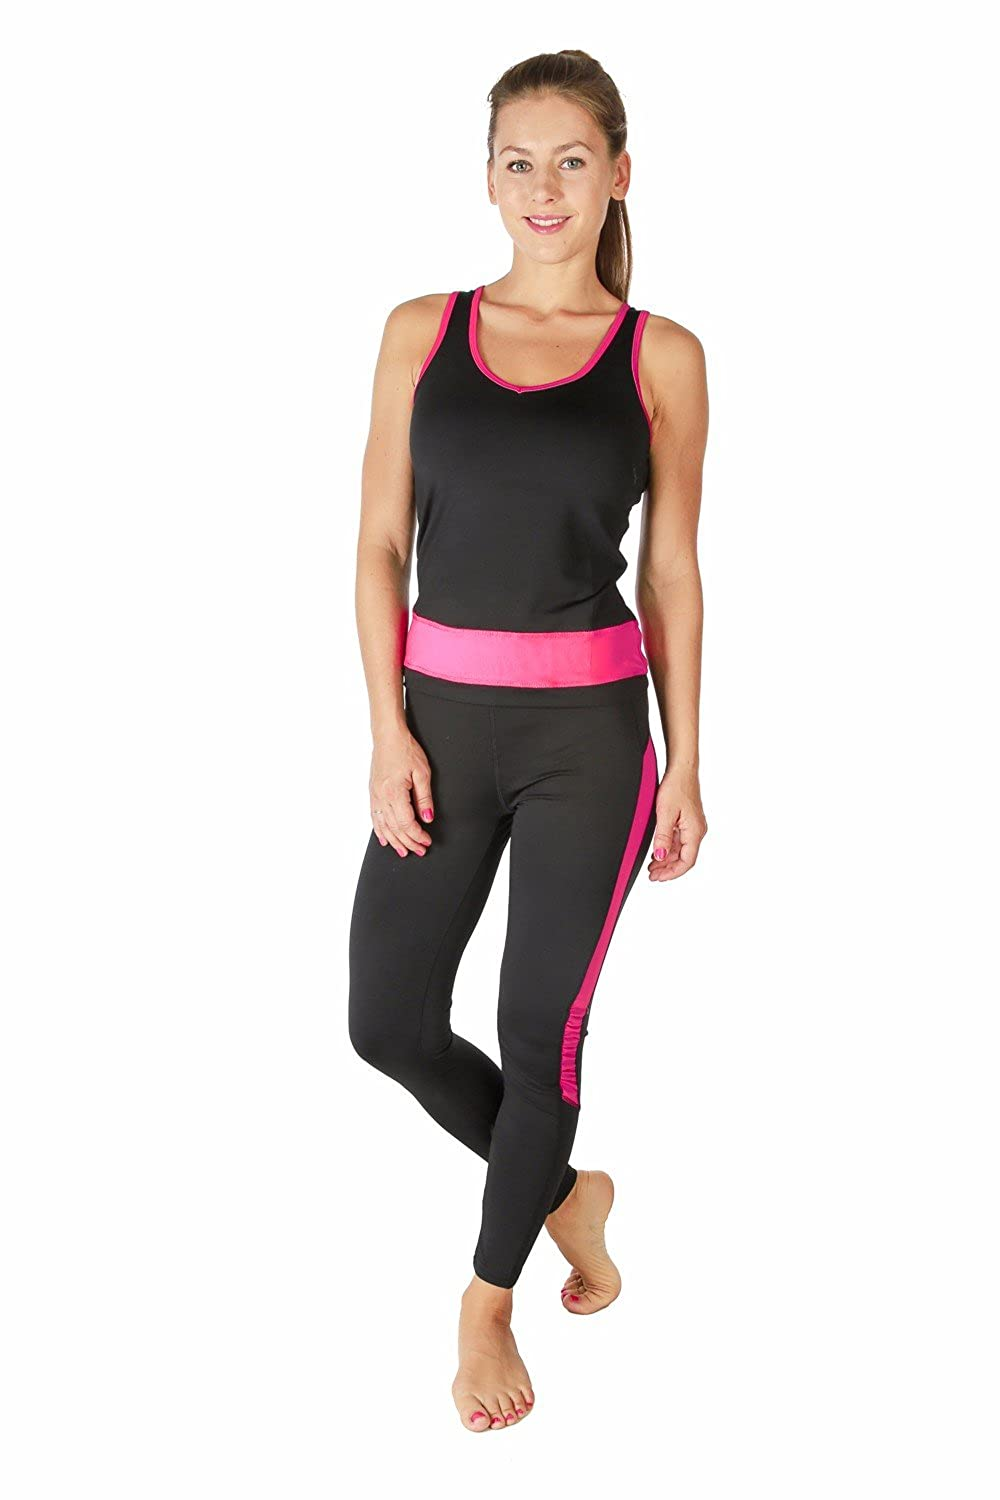 07f2b086ded25 Verscos Women's Stretch 3 Pieces Sets Top Tank Pant Leggings Jacket 64154  Large Fuchsia at Amazon Women's Clothing store: